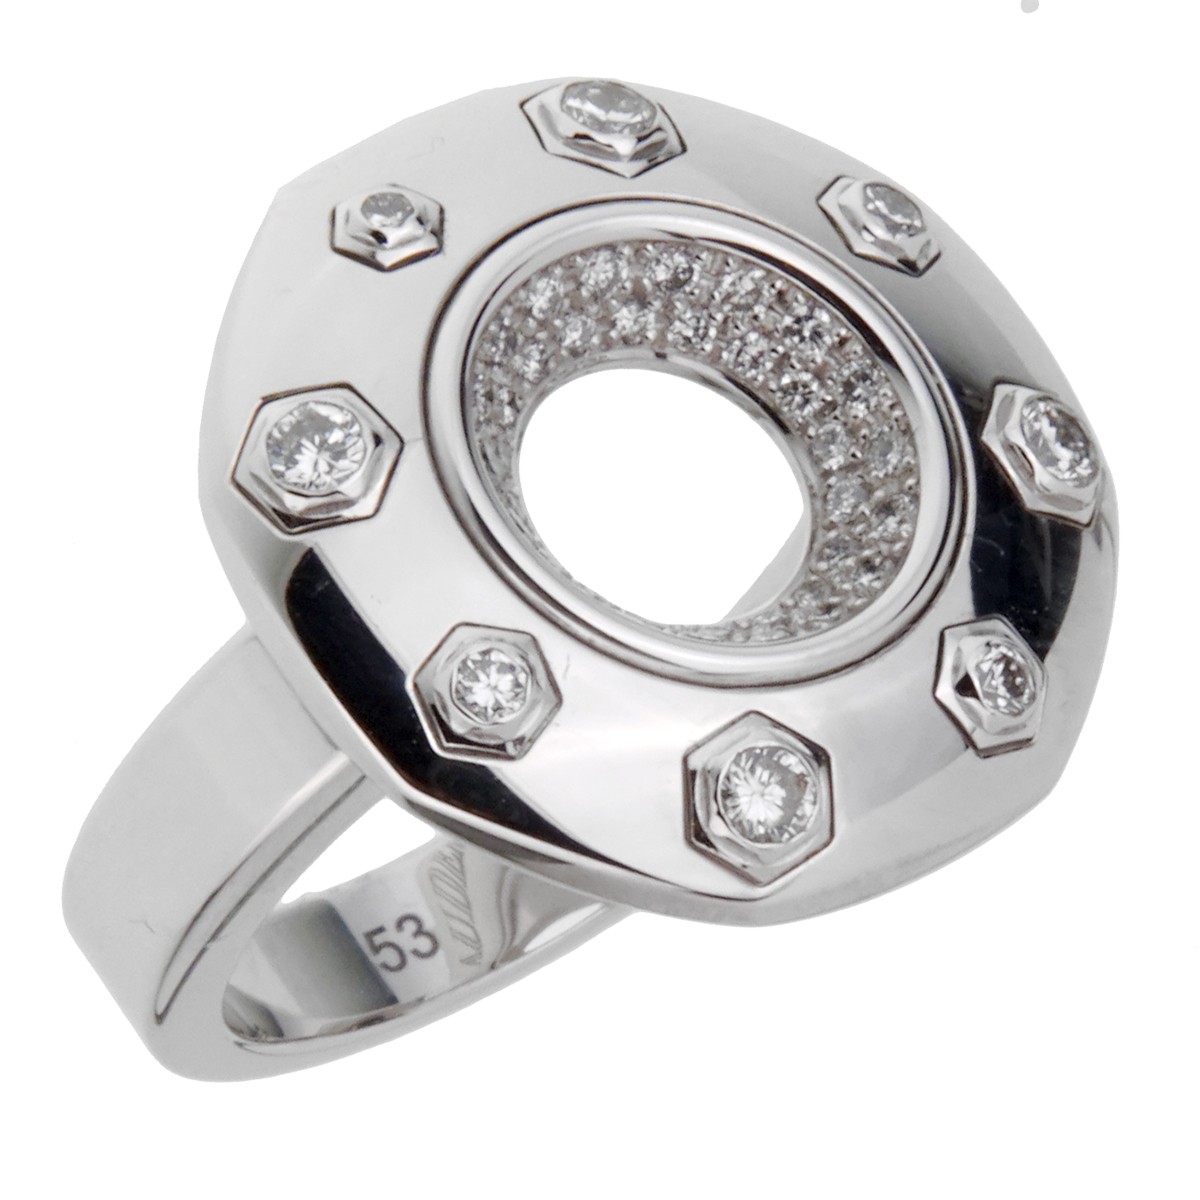 Audemars Piguet Royal Oak Diamond White Gold Ring - Audemars Piguet Jewelry